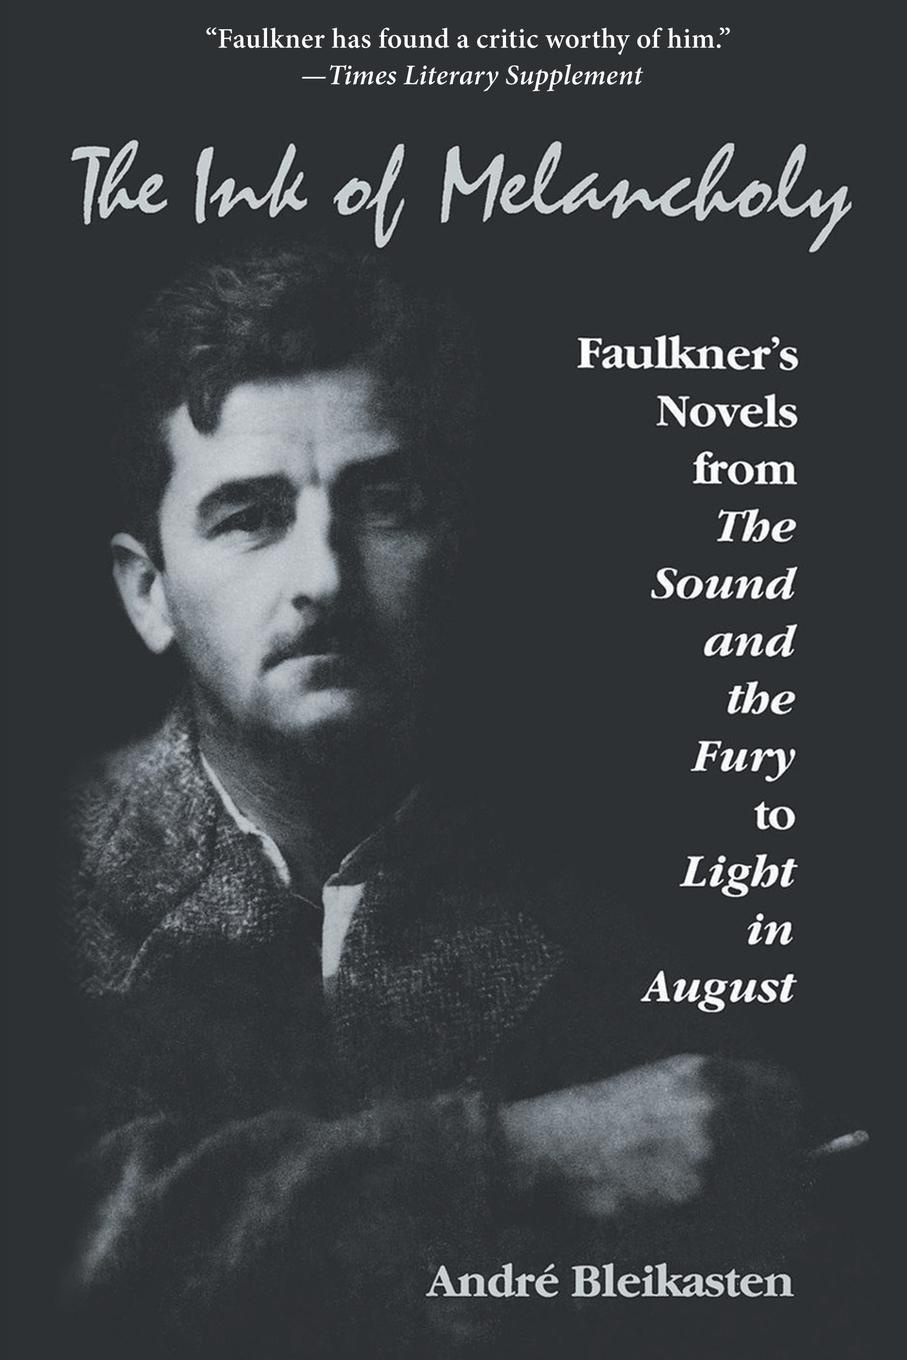 Andre Bleikasten Ink of Melancholy. Faulkner's Novels from the Sound and the Fury to Light in August цена и фото